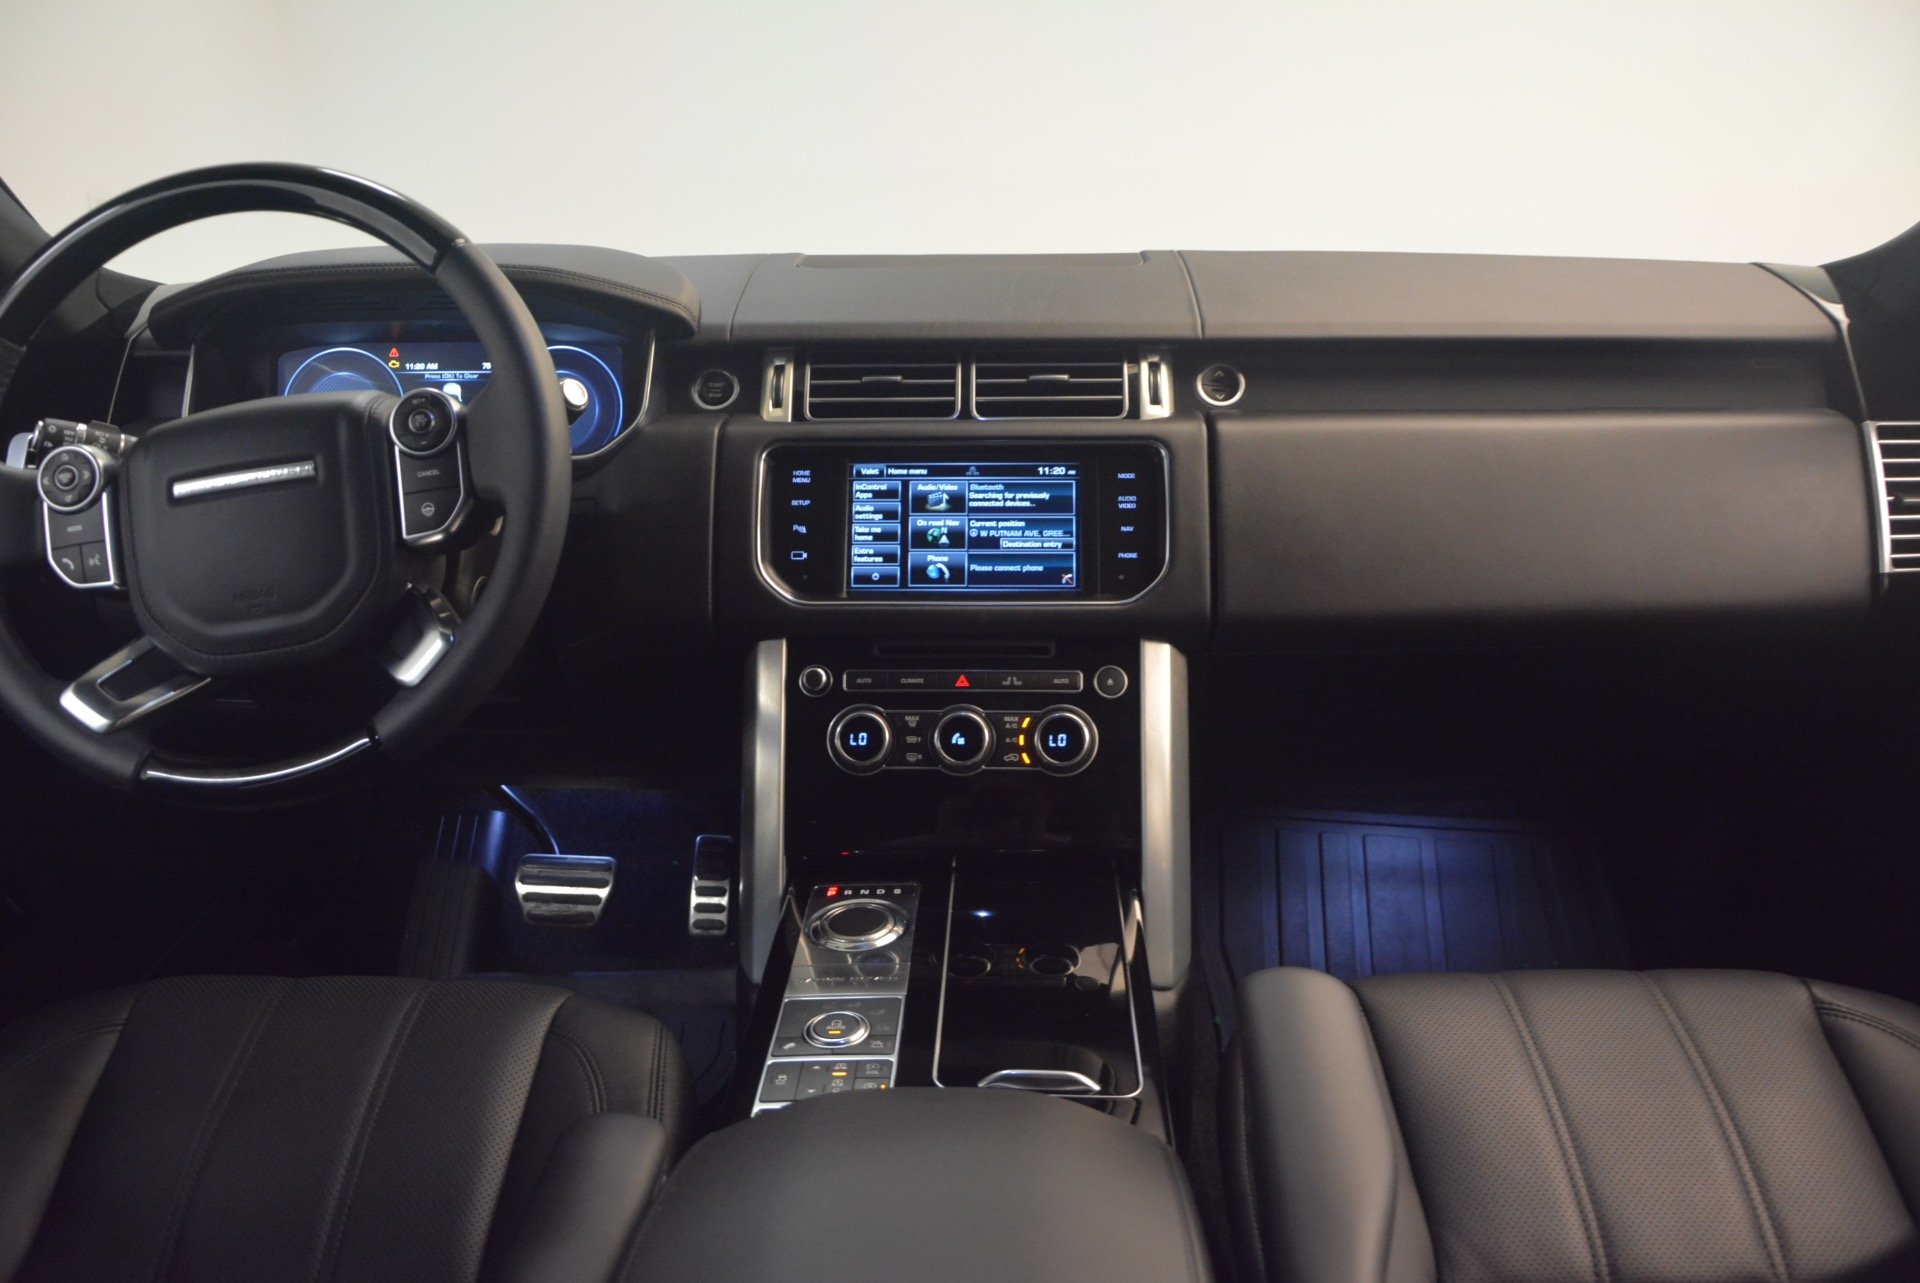 Used 2015 Land Rover Range Rover Supercharged For Sale In Westport, CT 1292_p38